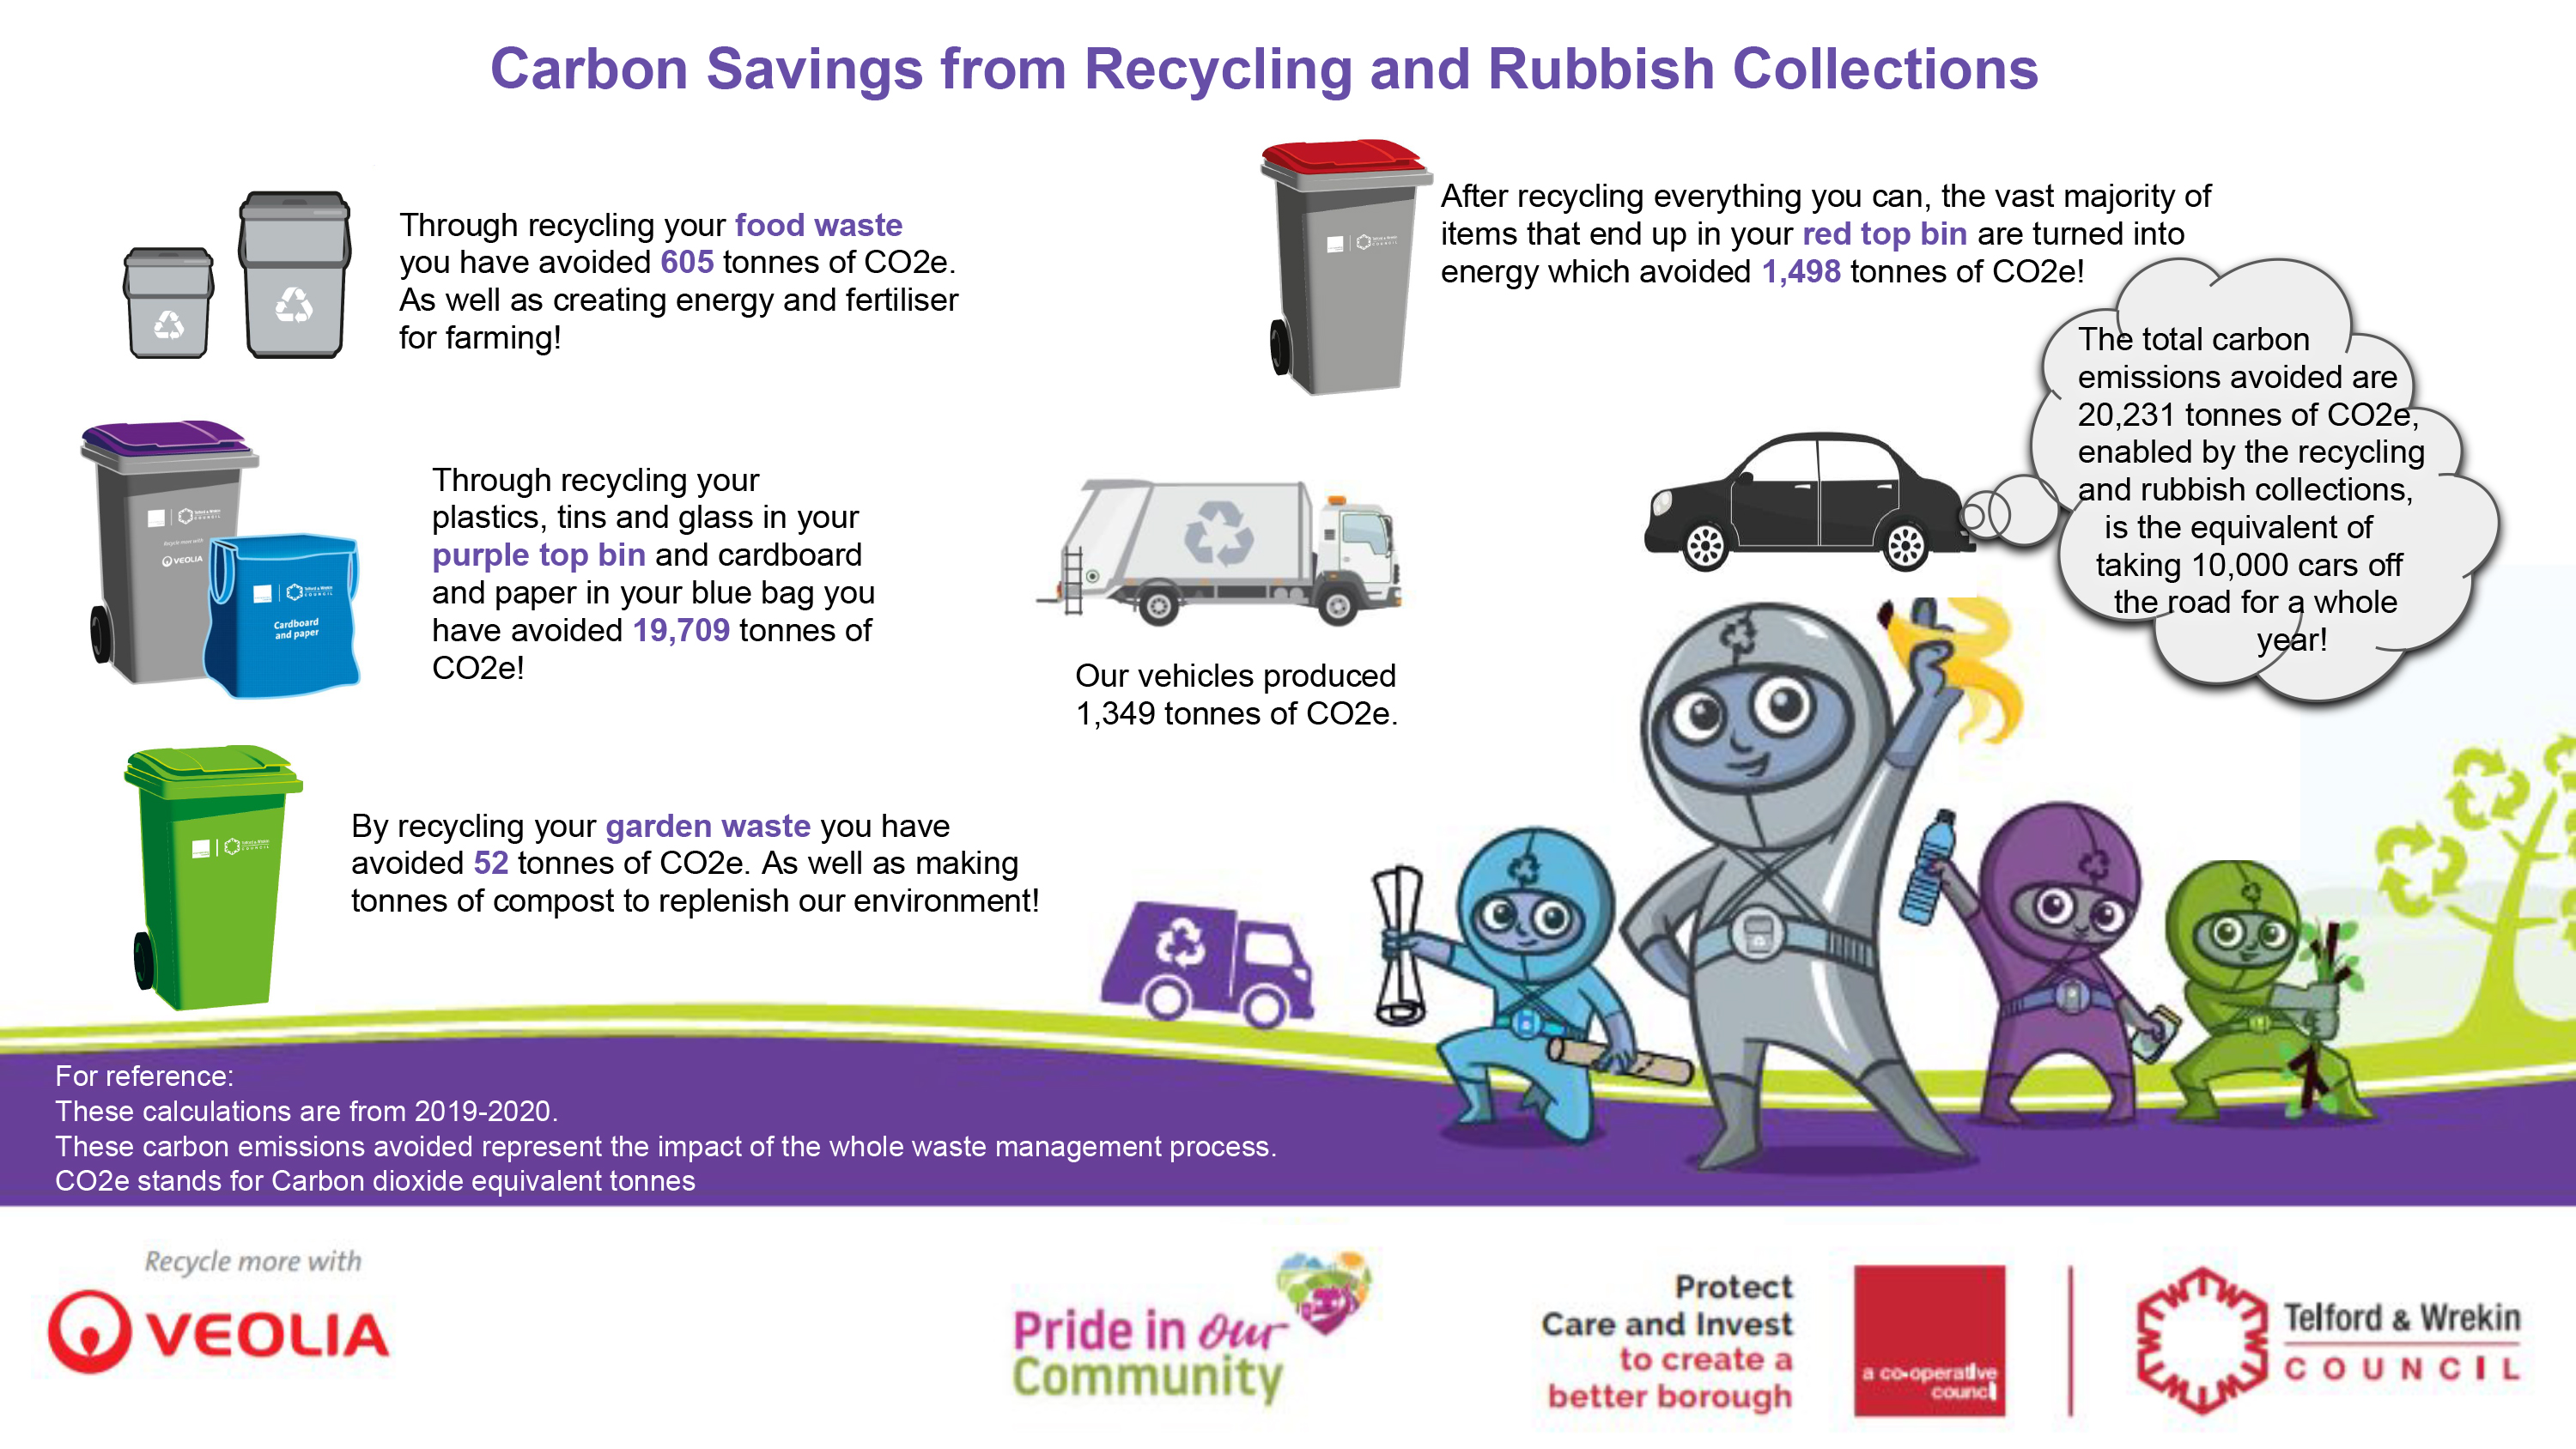 An illustration of the carbon savings made through recycling and waste collections in Telford and Wrekin.